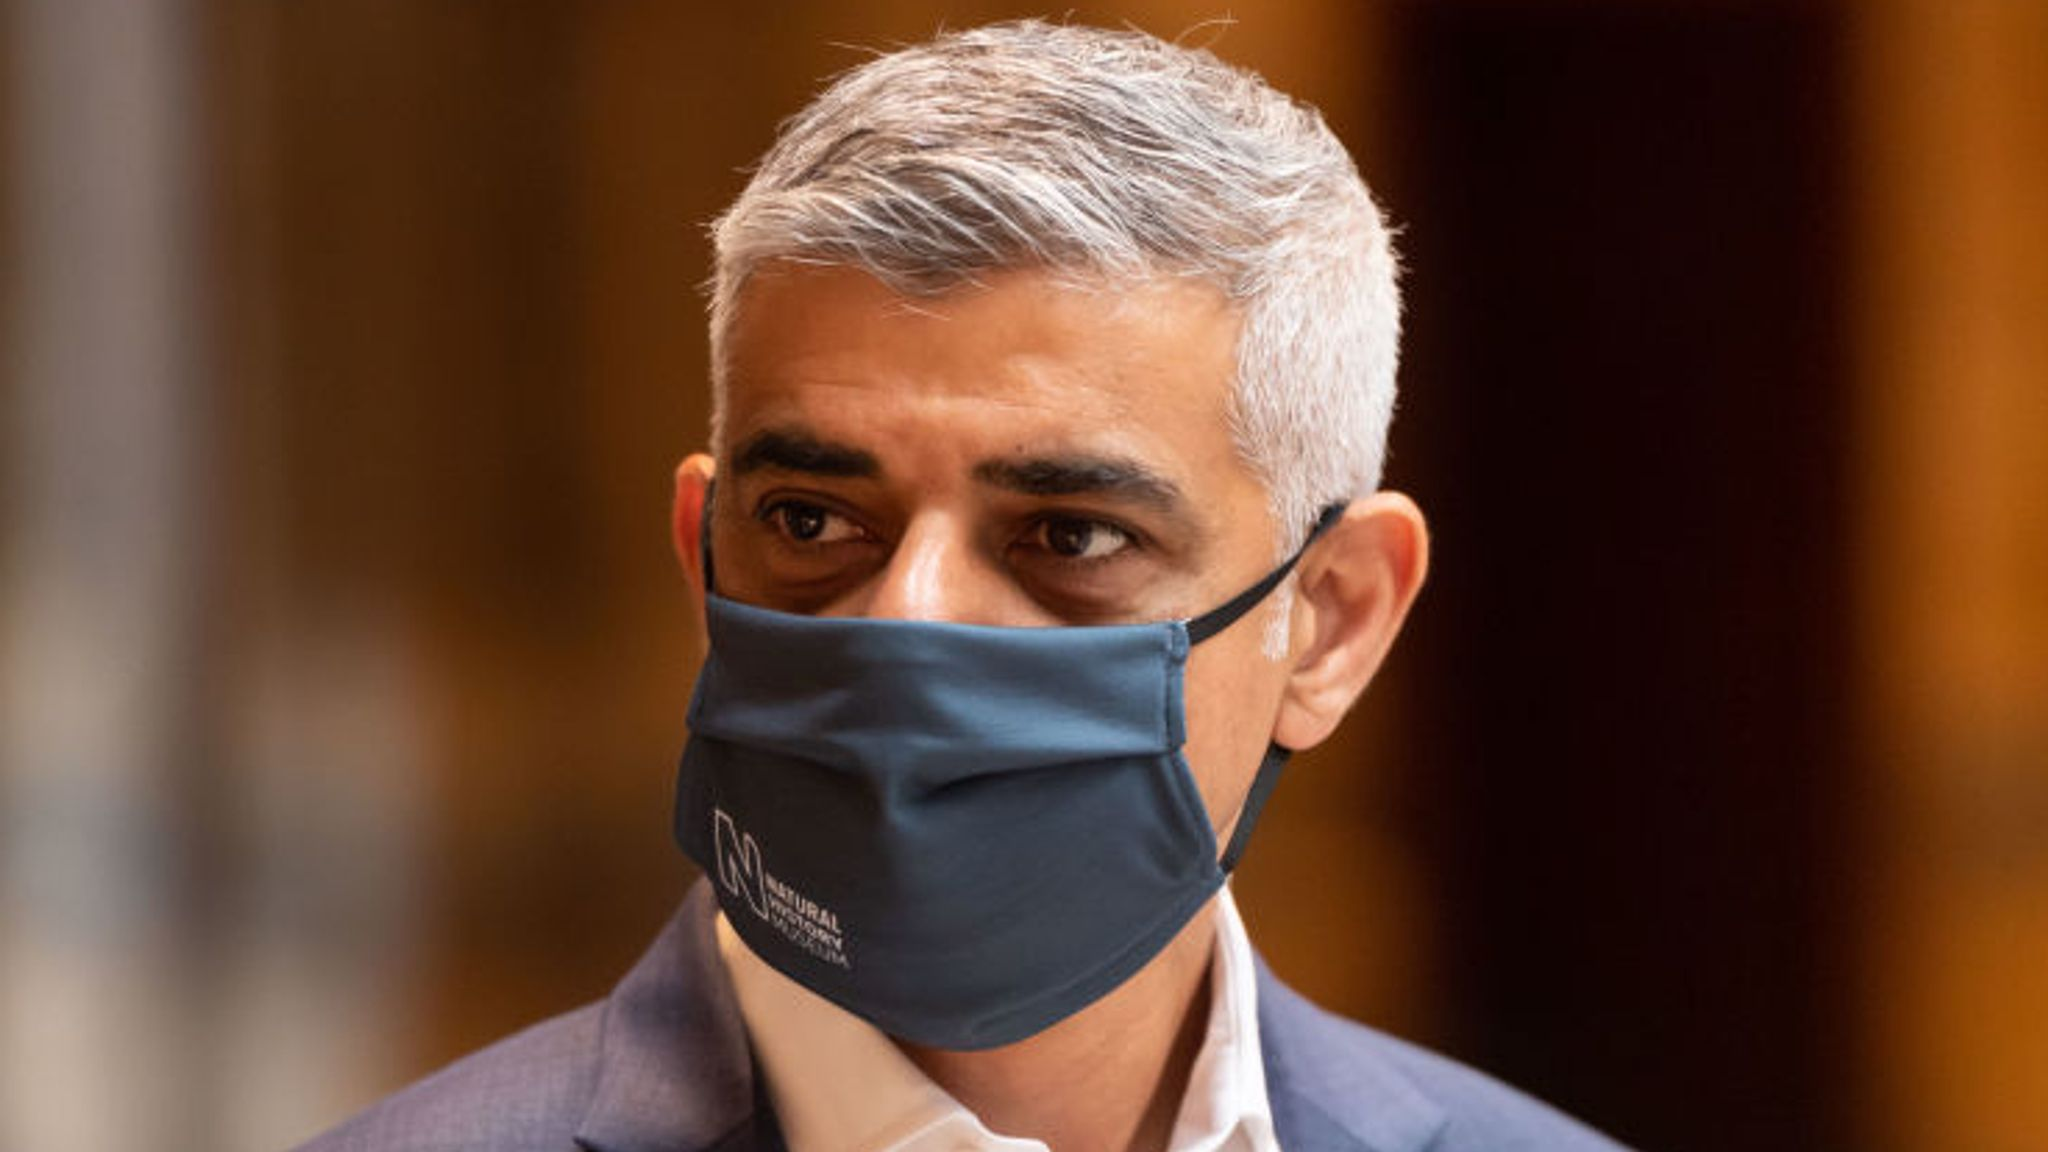 Coronavirus: Mayor of London Sadiq Khan 'frustrated' over 'lack of information' about contact tracing app